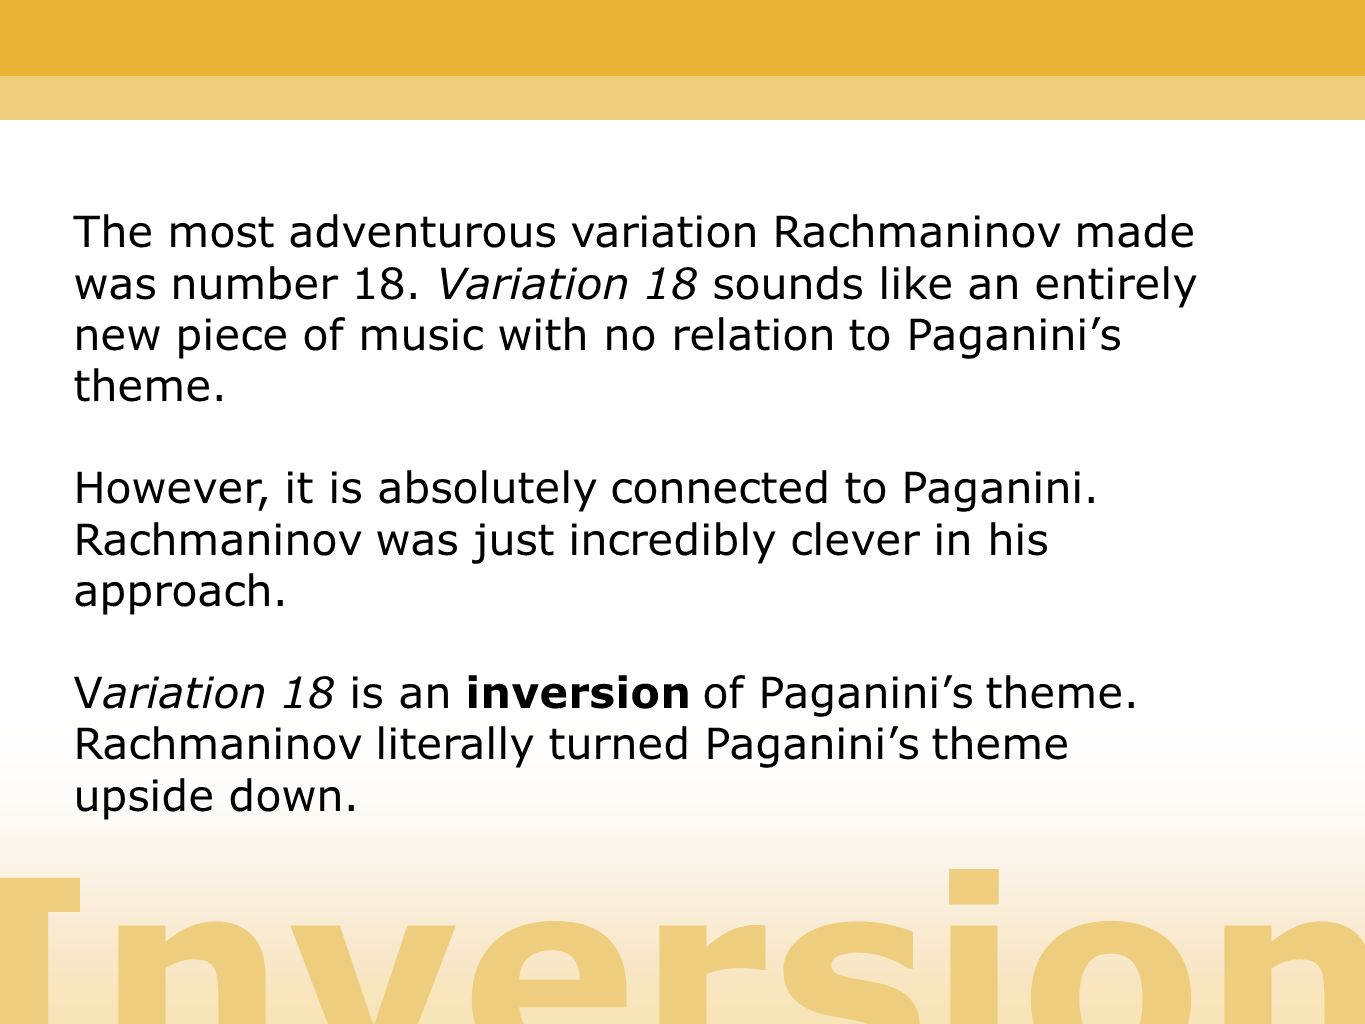 Inversion The most adventurous variation Rachmaninov made was number 18.